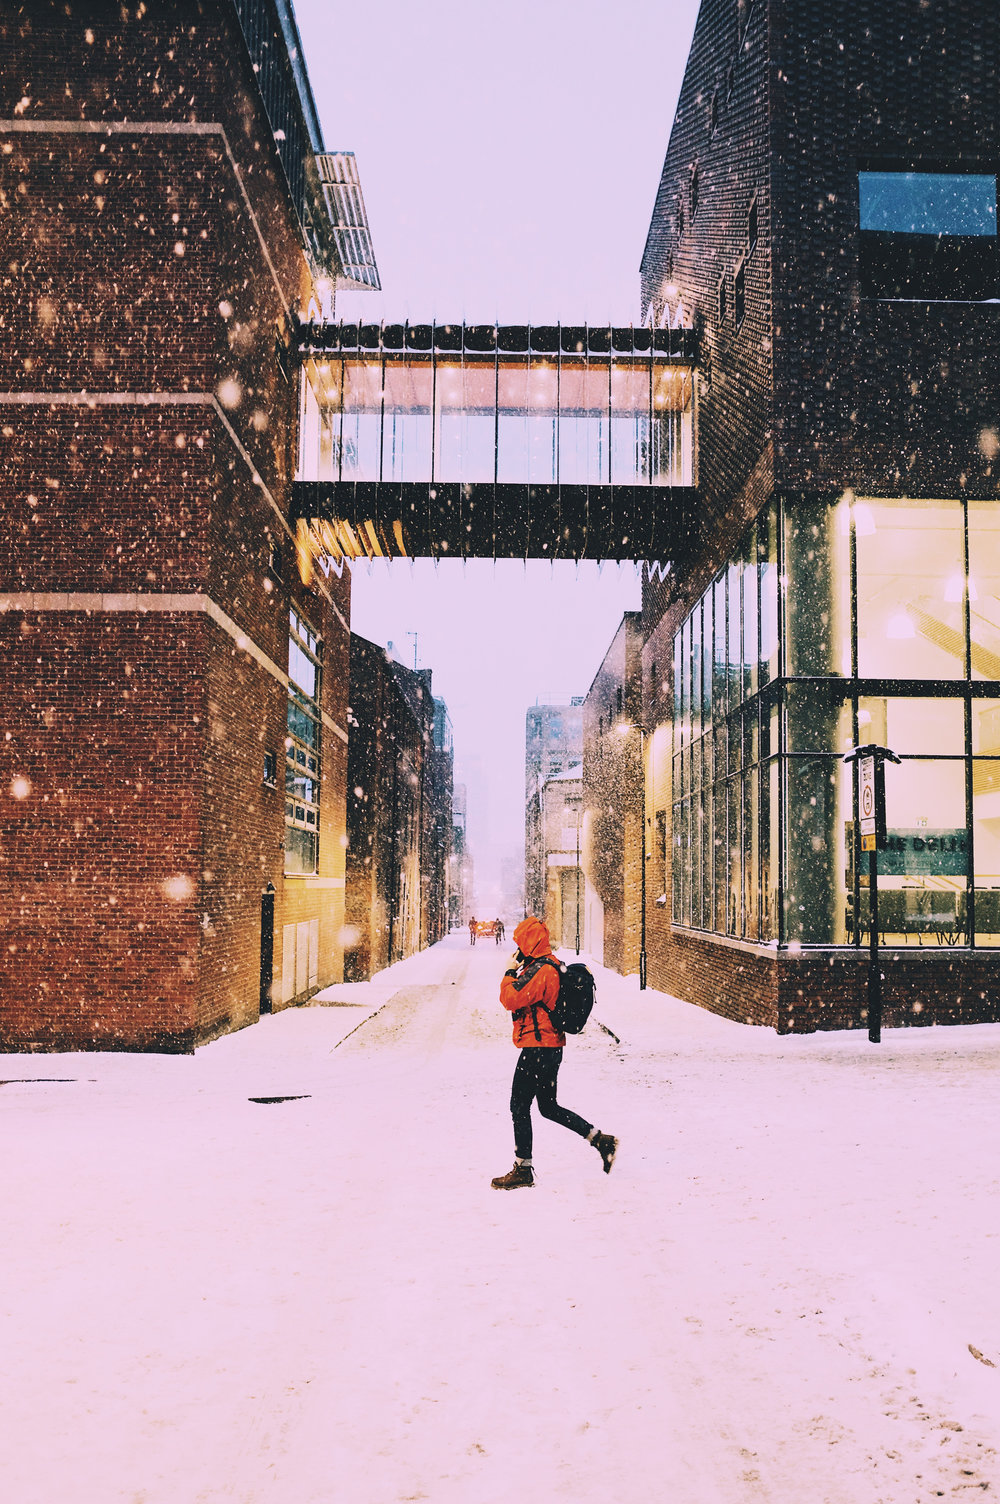 Snowy Back Streets